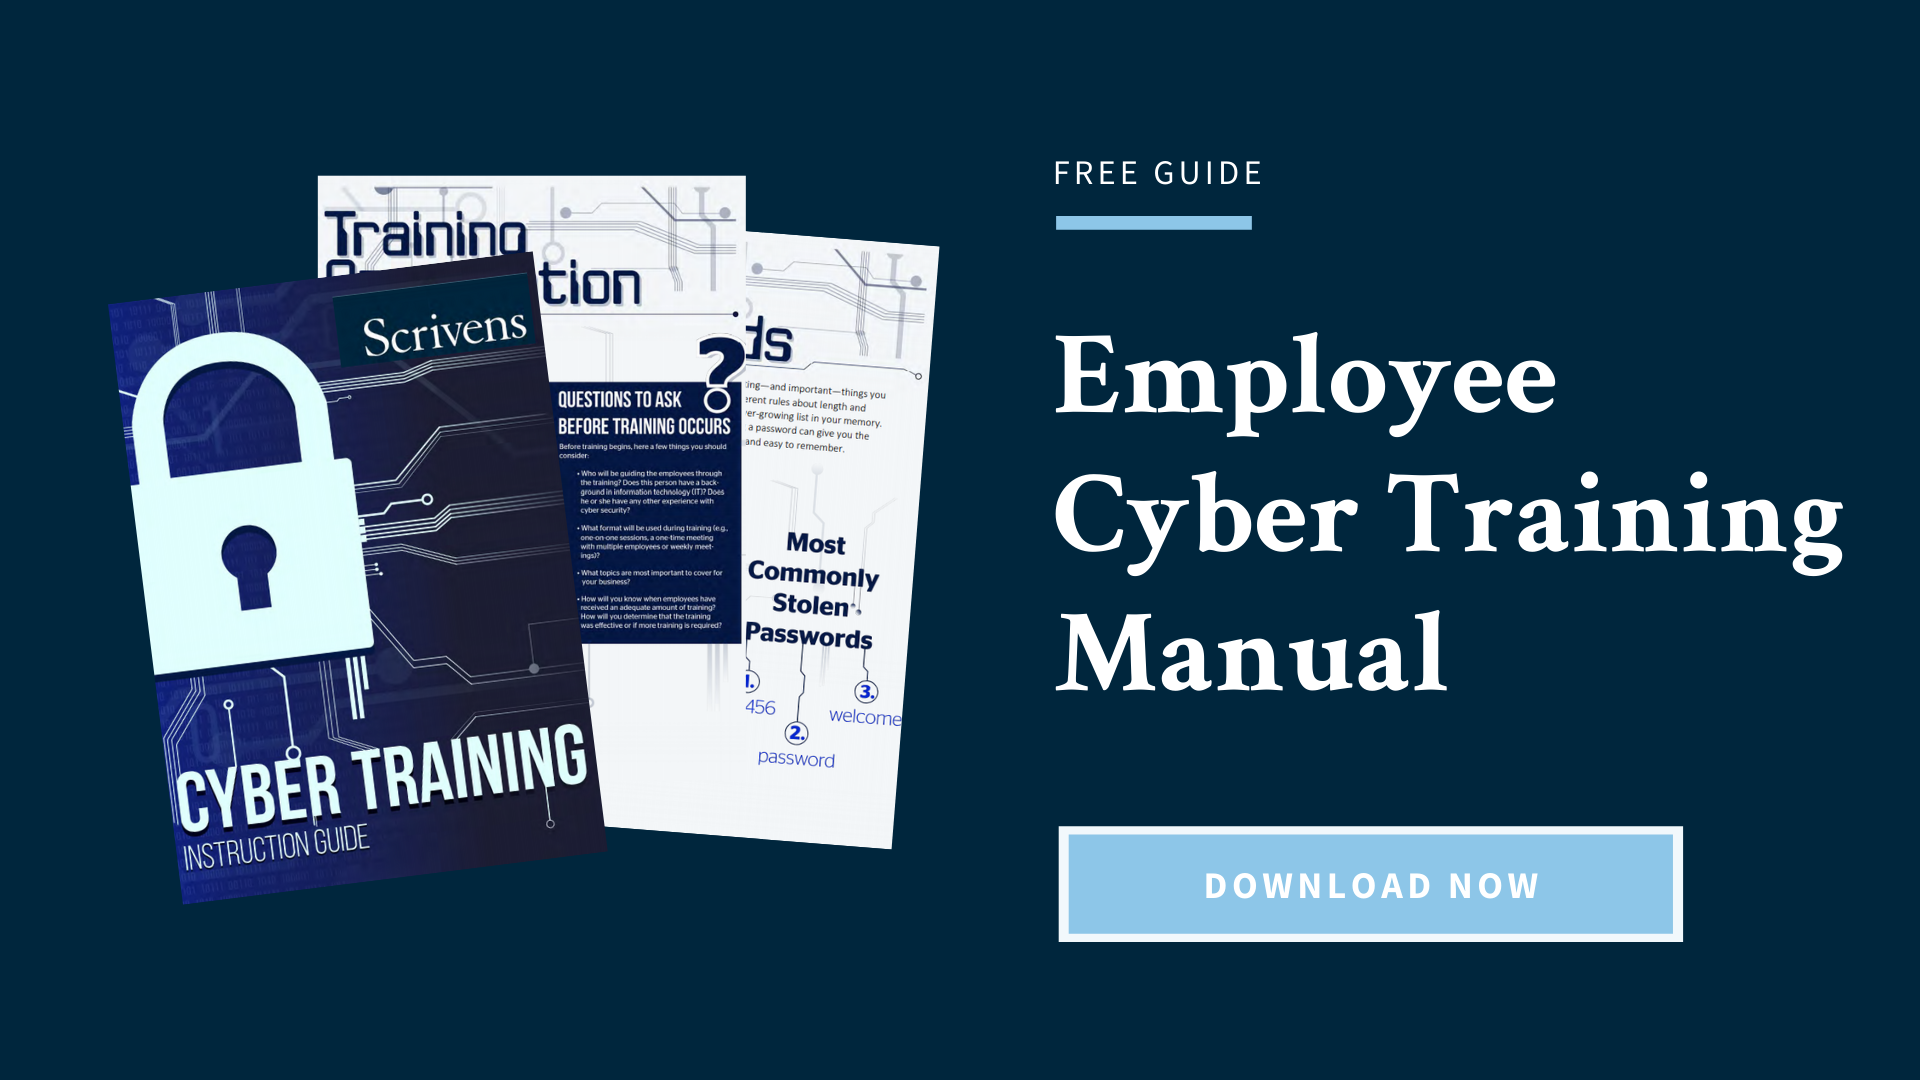 Employee Cyber Training Manual [Free Download]